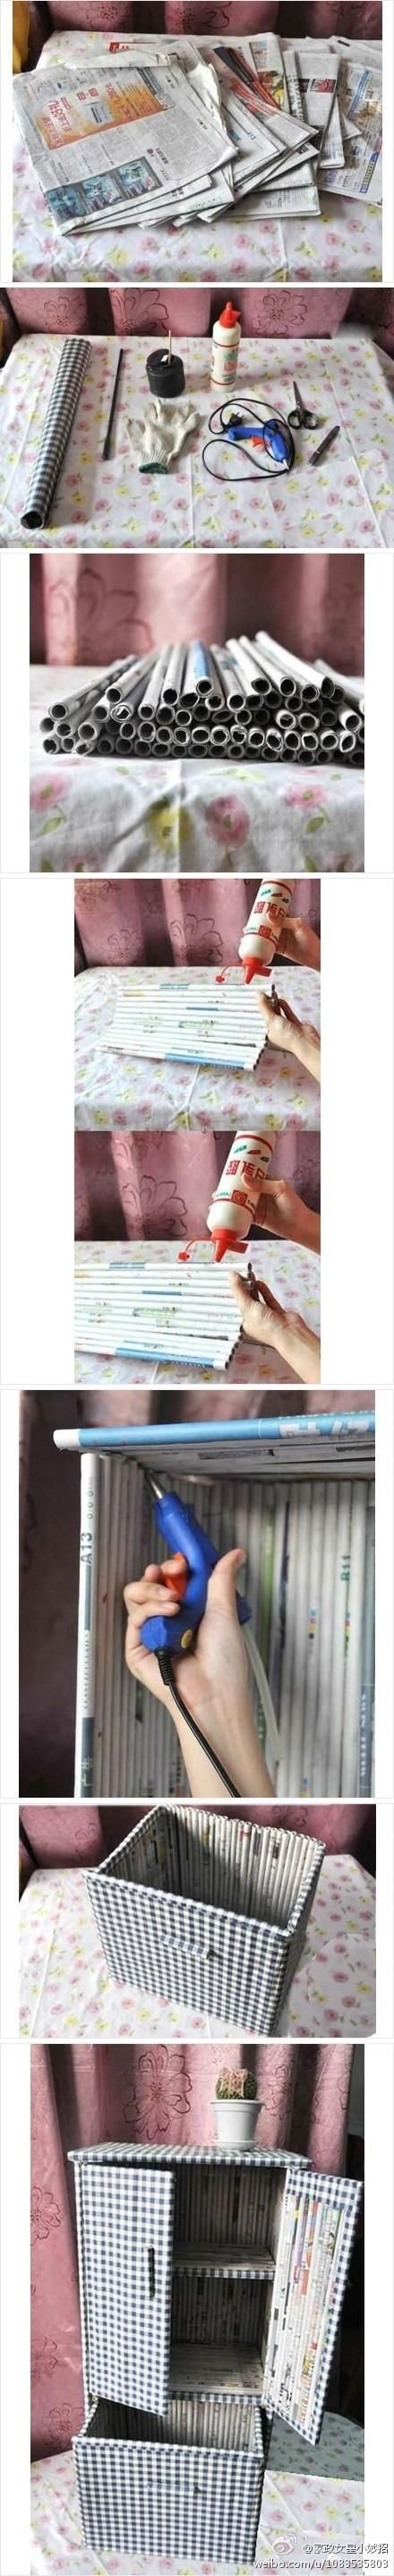 Recycling done very clever! Gonna do this with all the magazines I have laying around.